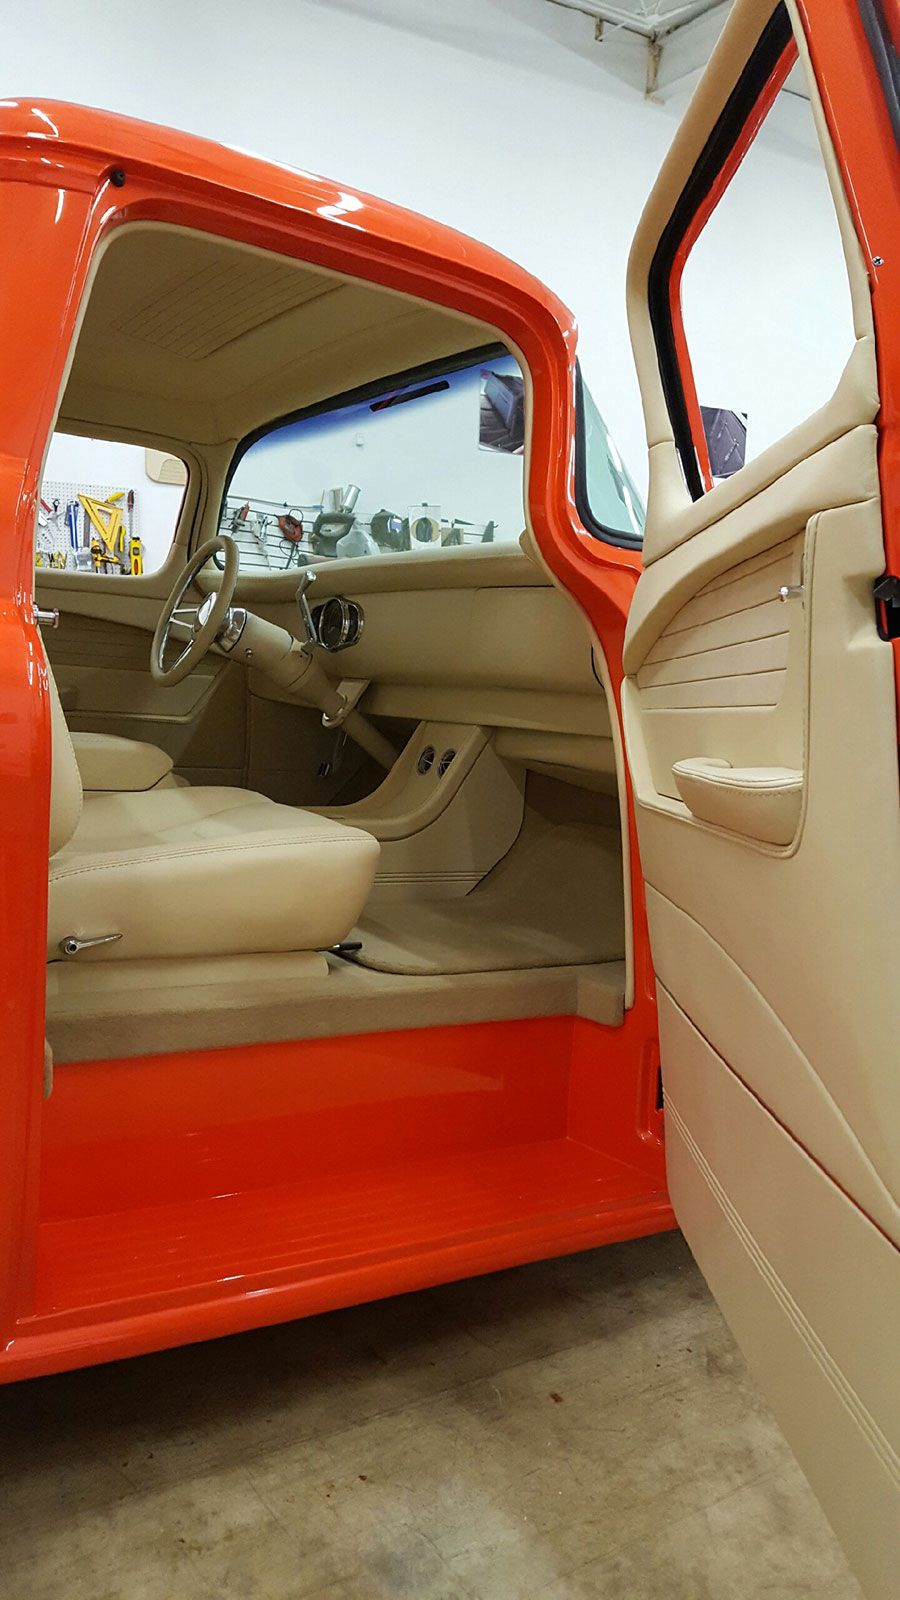 1955 Chevy Truck Built By East Coast Muscle Cars Bux Customs Hot Rod Interiors Custom Trucks Truck Interior Chevy Trucks